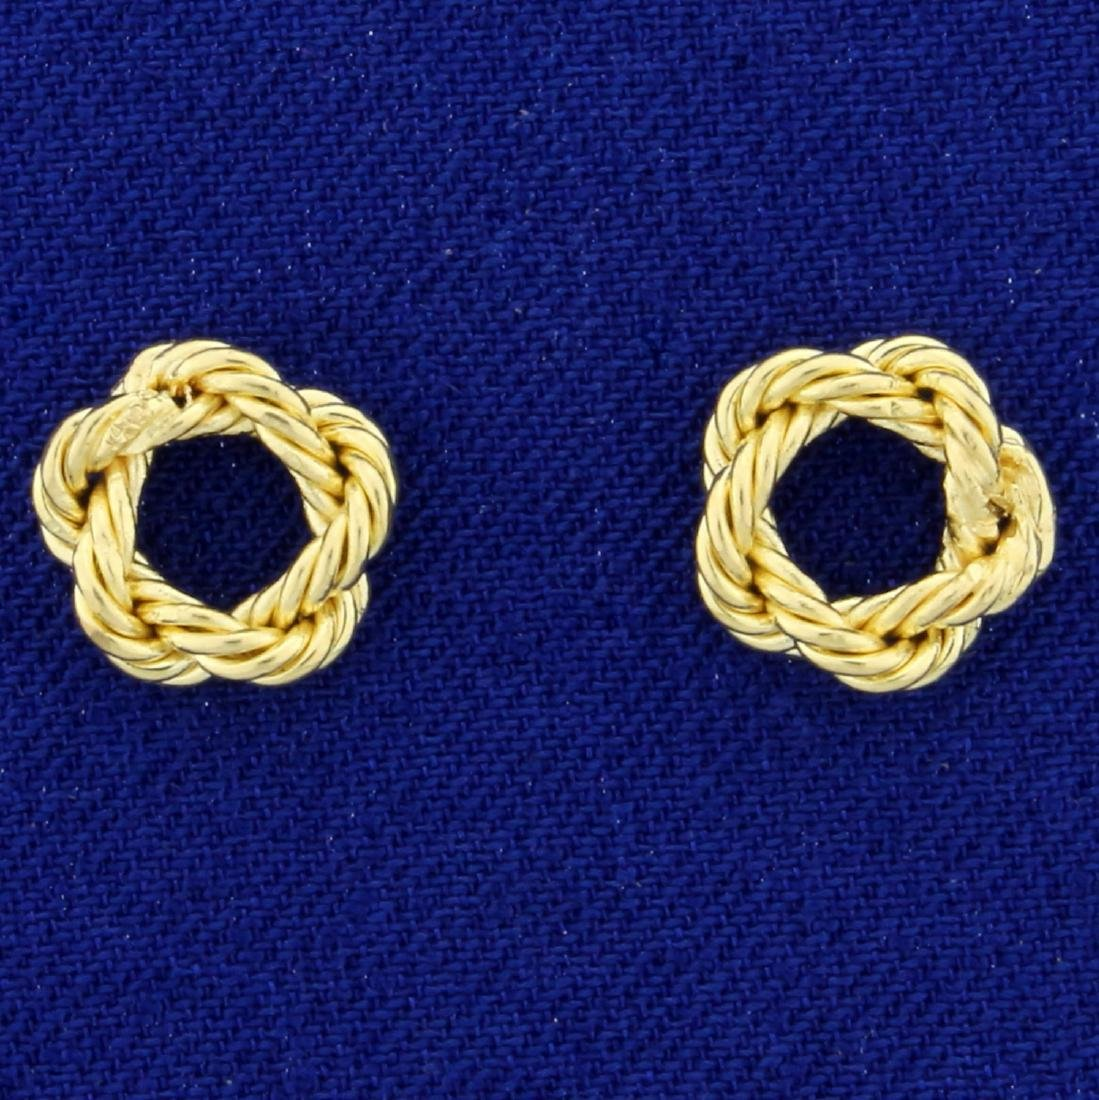 Pair of Love Knot Nautical Rope Charms in 14K Yellow